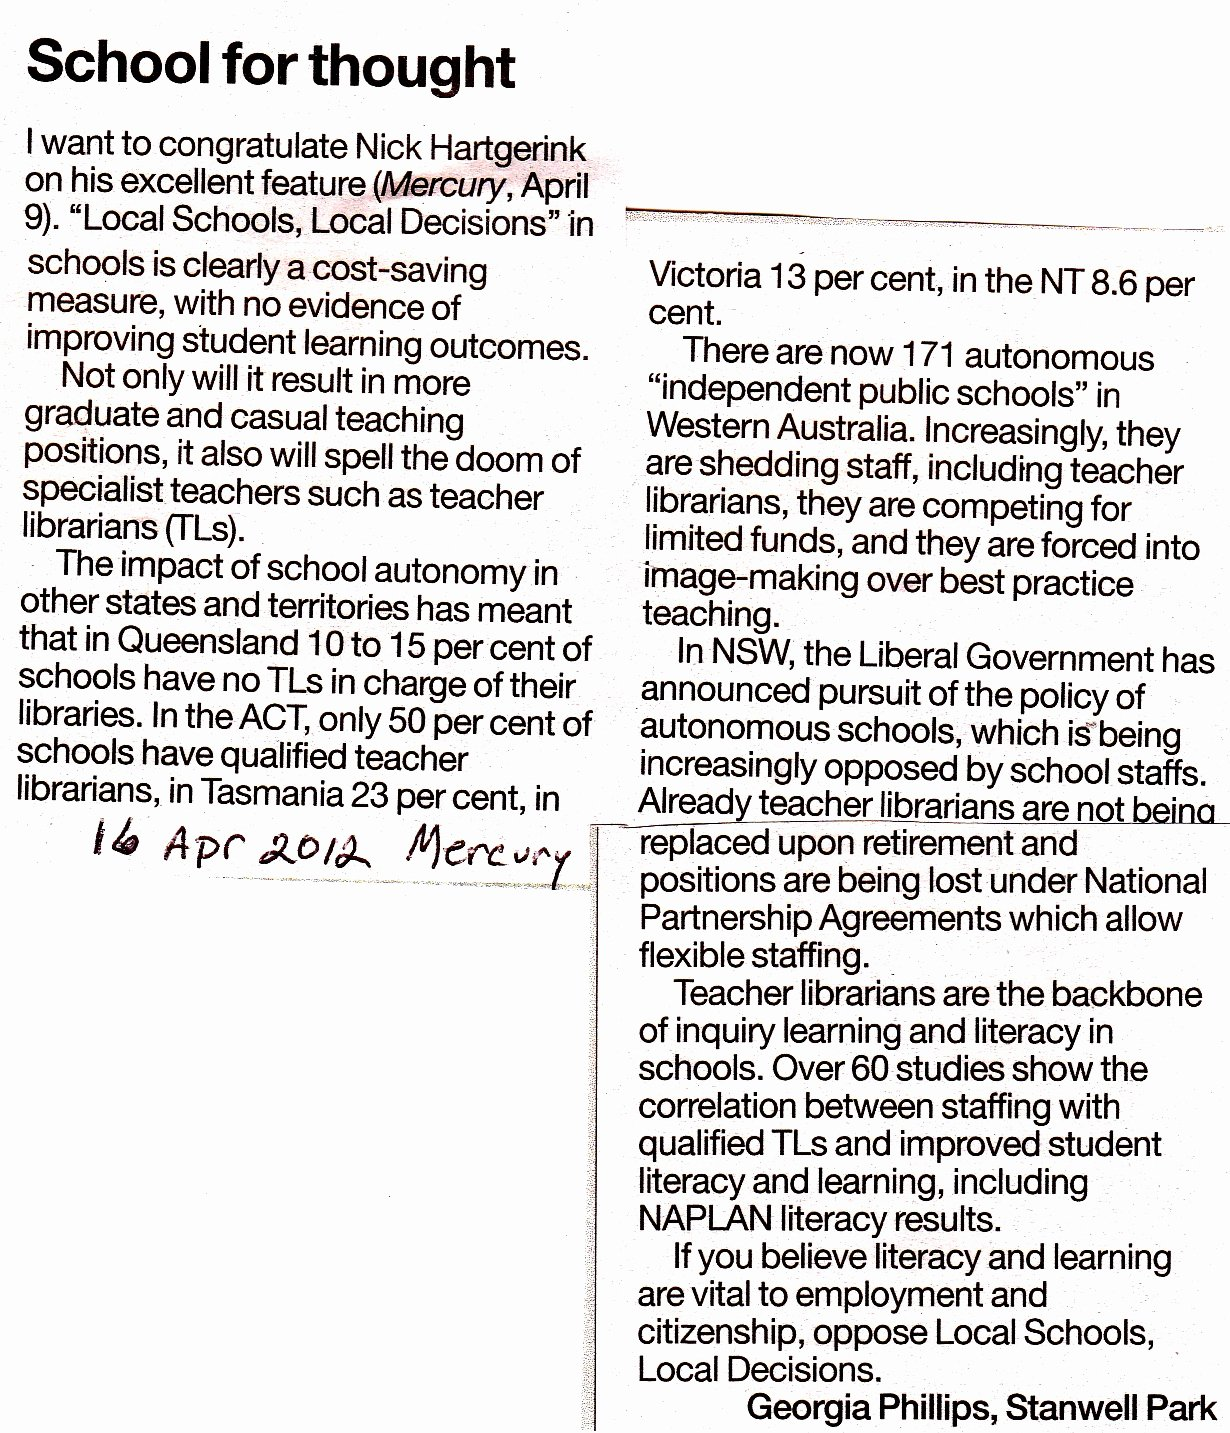 Letter From the Editor Example for Students Inspirational Letters to the Editor